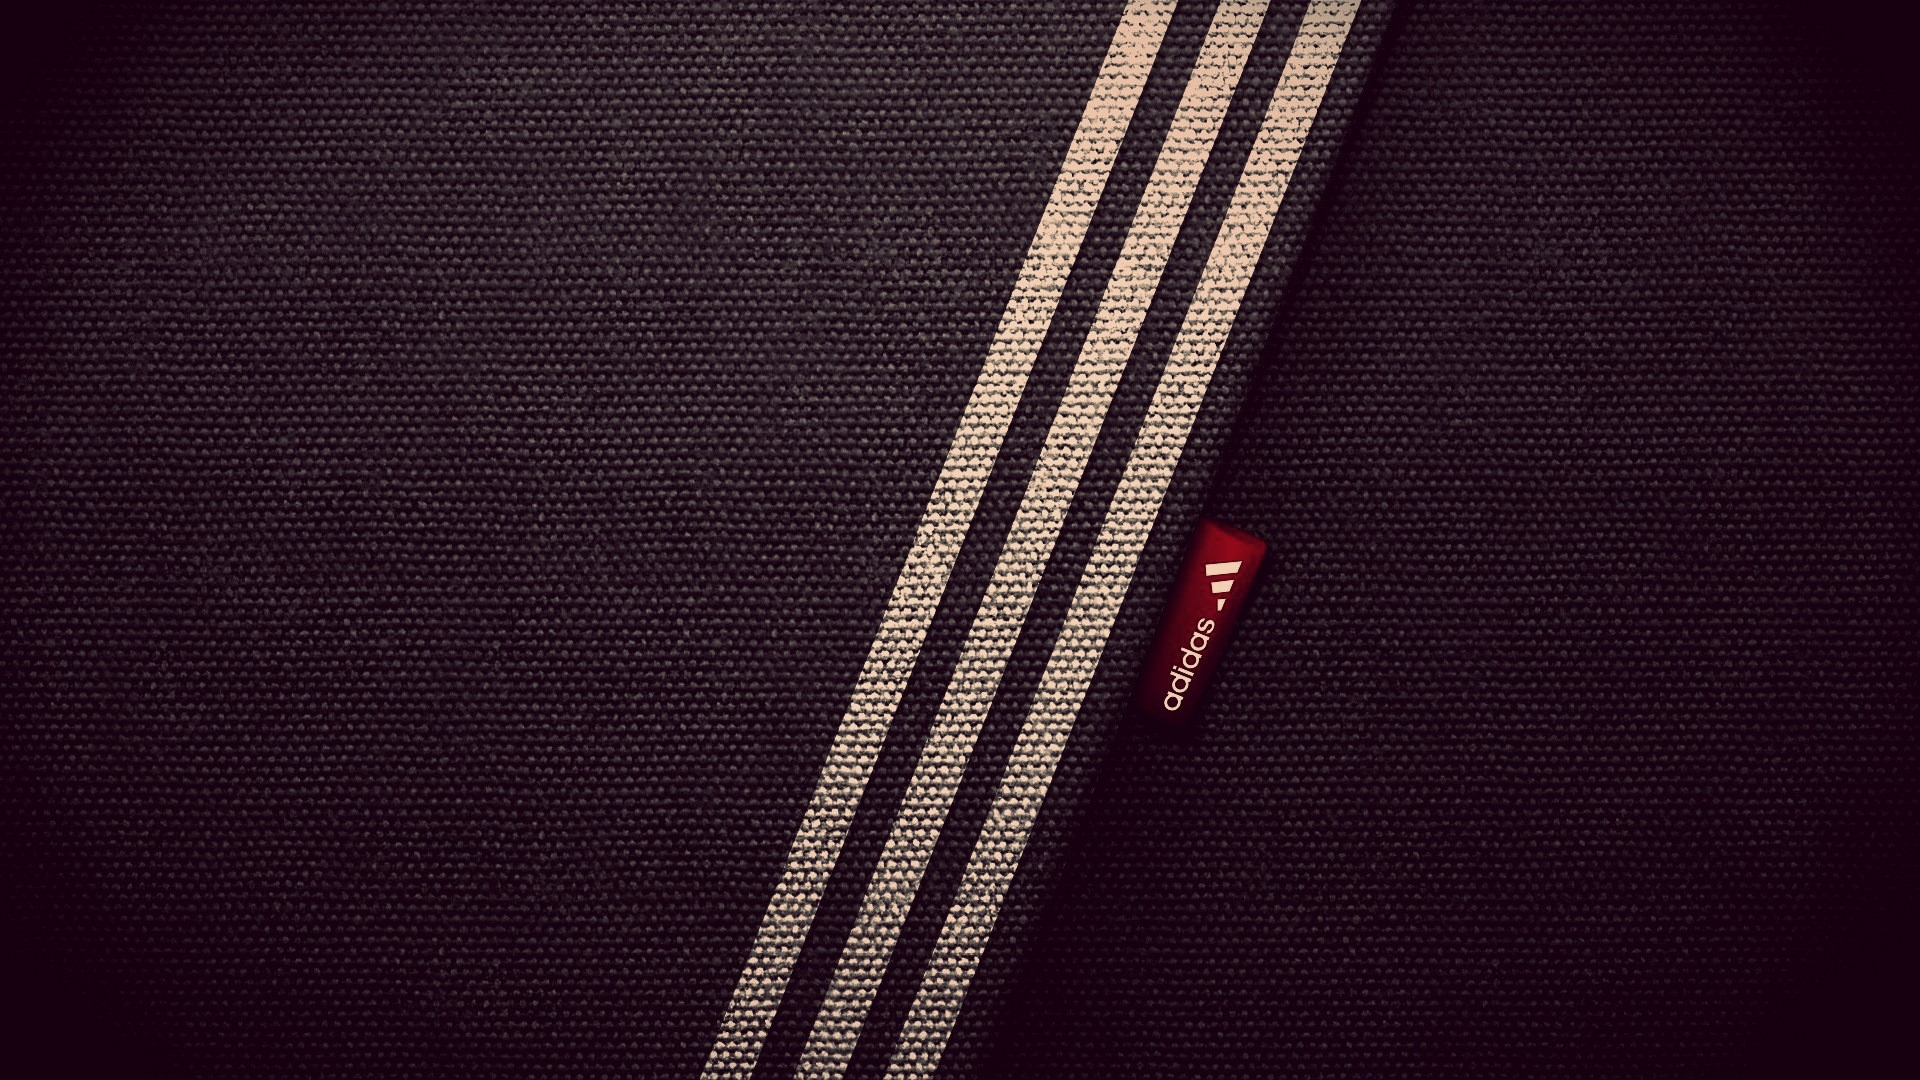 Download Wallpapers Download 1920x1080 adidas textures 1920x1080